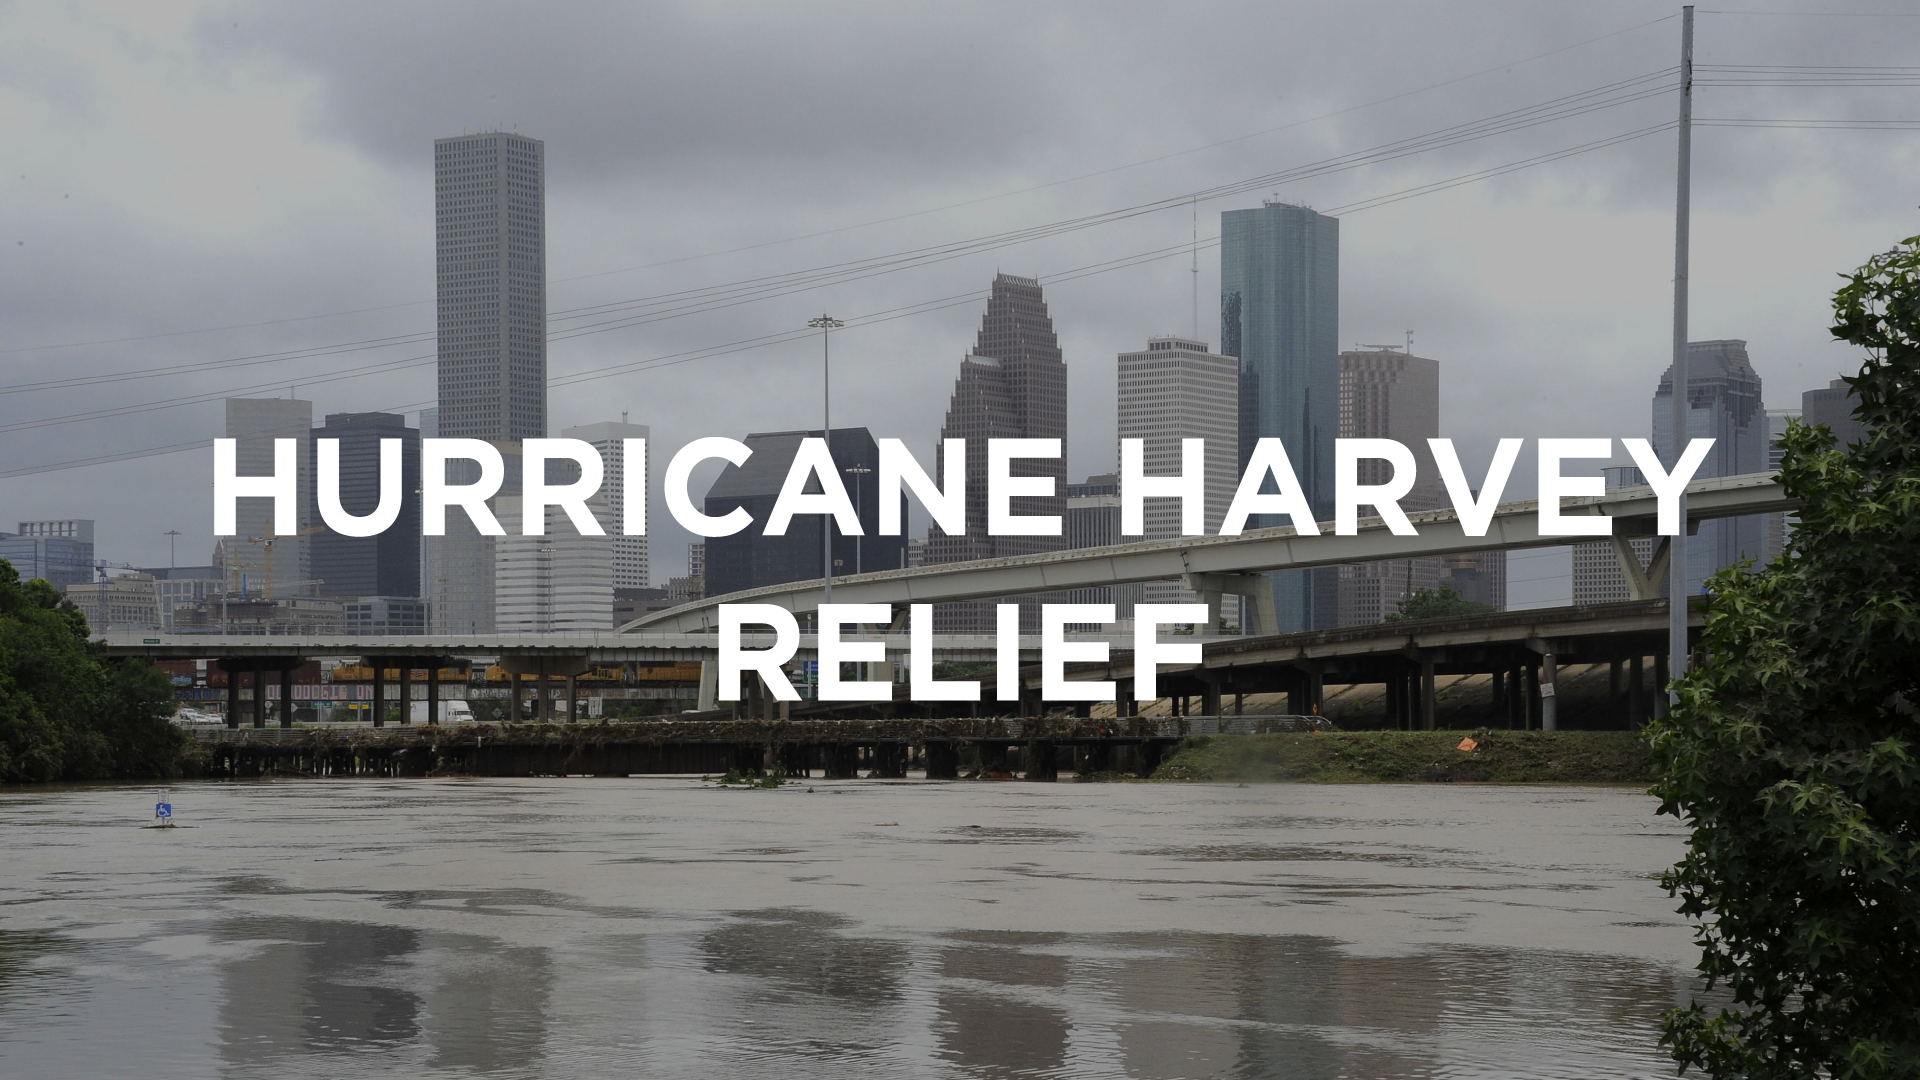 H     urricane Harvey Relief    August 30th, 2017